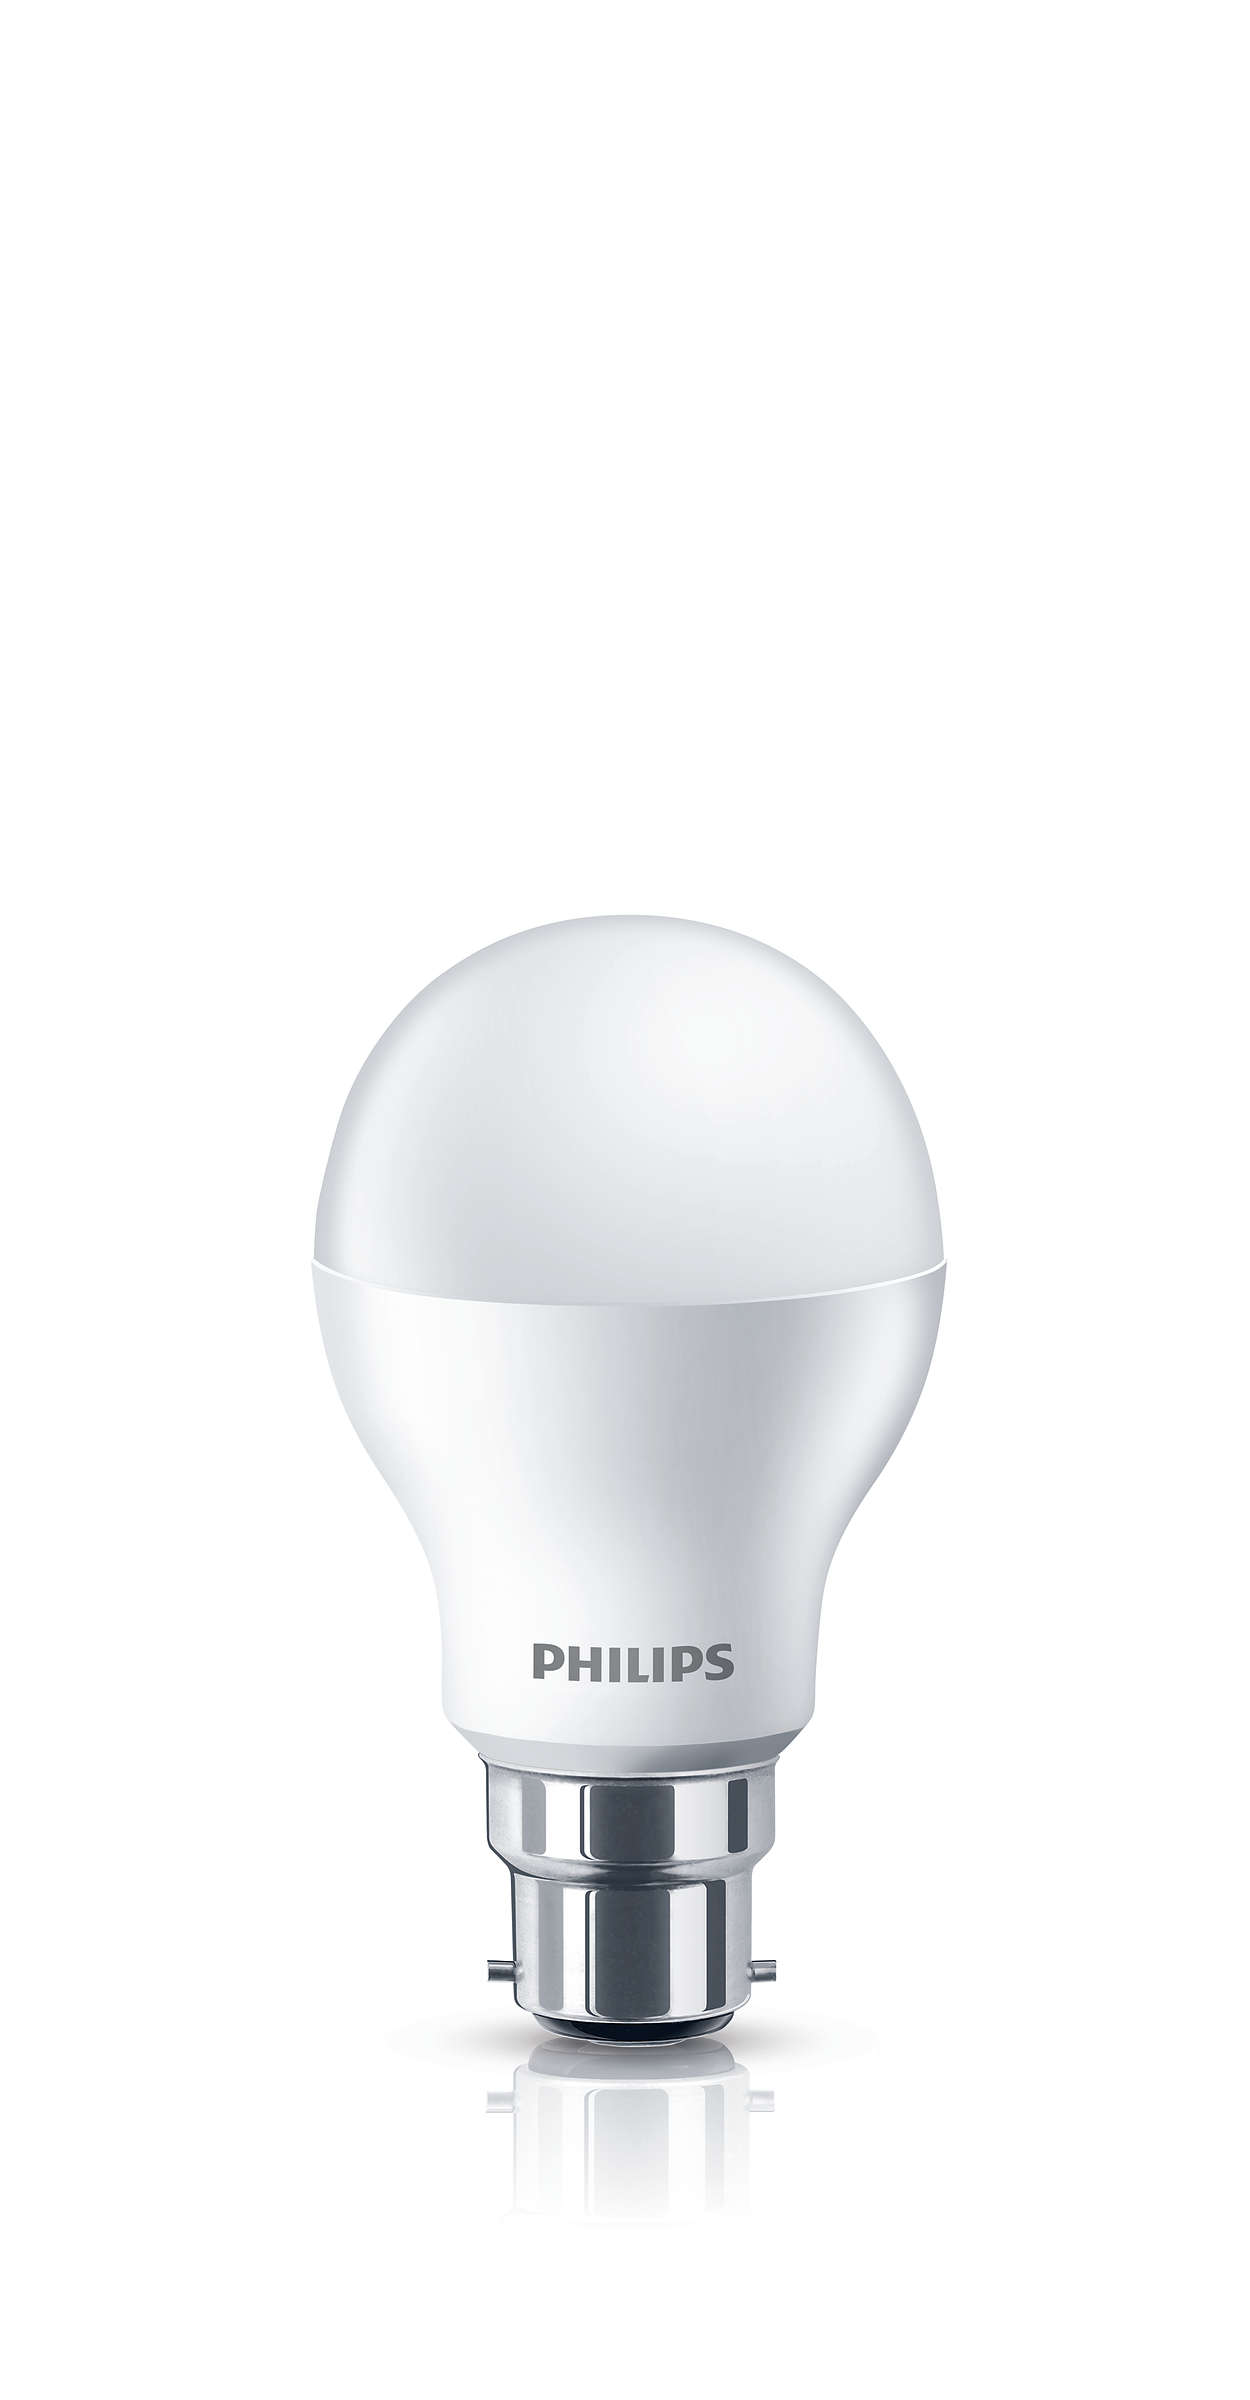 Warm white light, no compromise on light quality